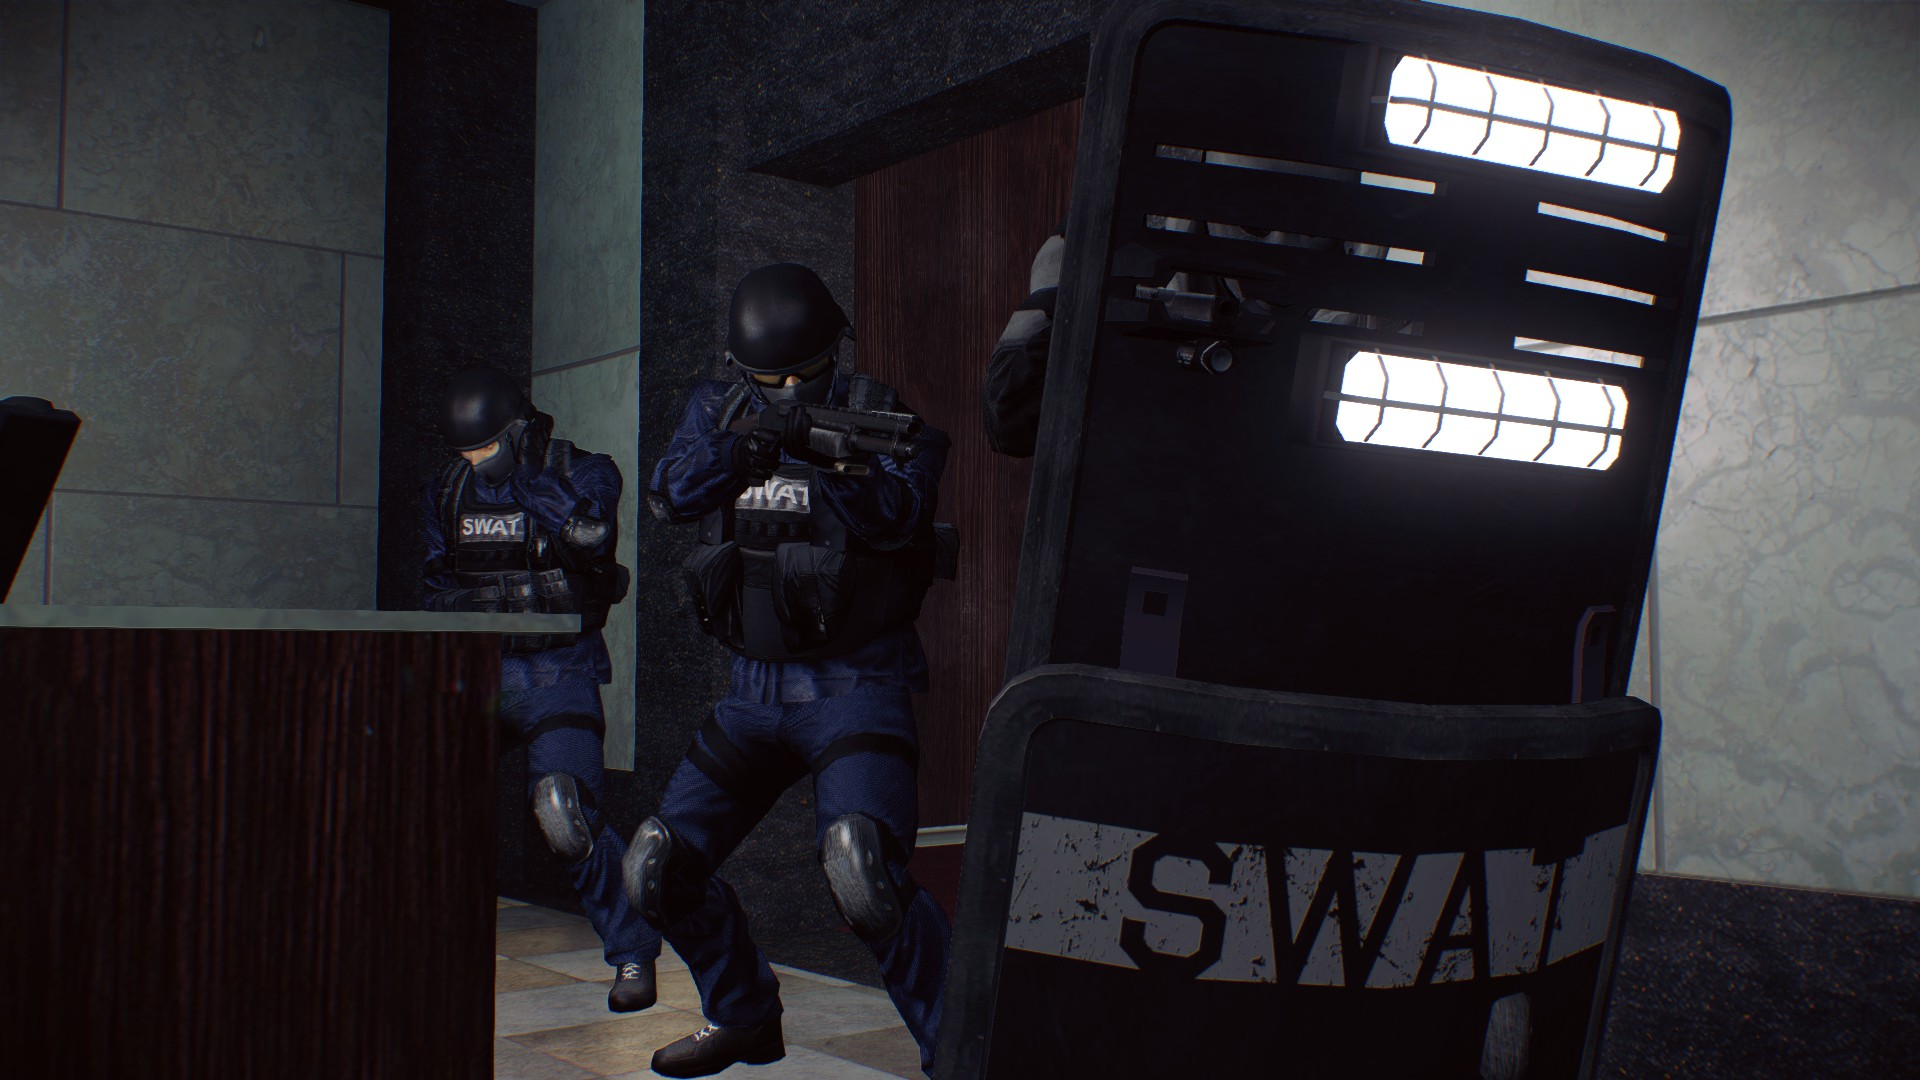 Steam Community :: Guide :: PAYDAY 2 RESTORATION MOD: The